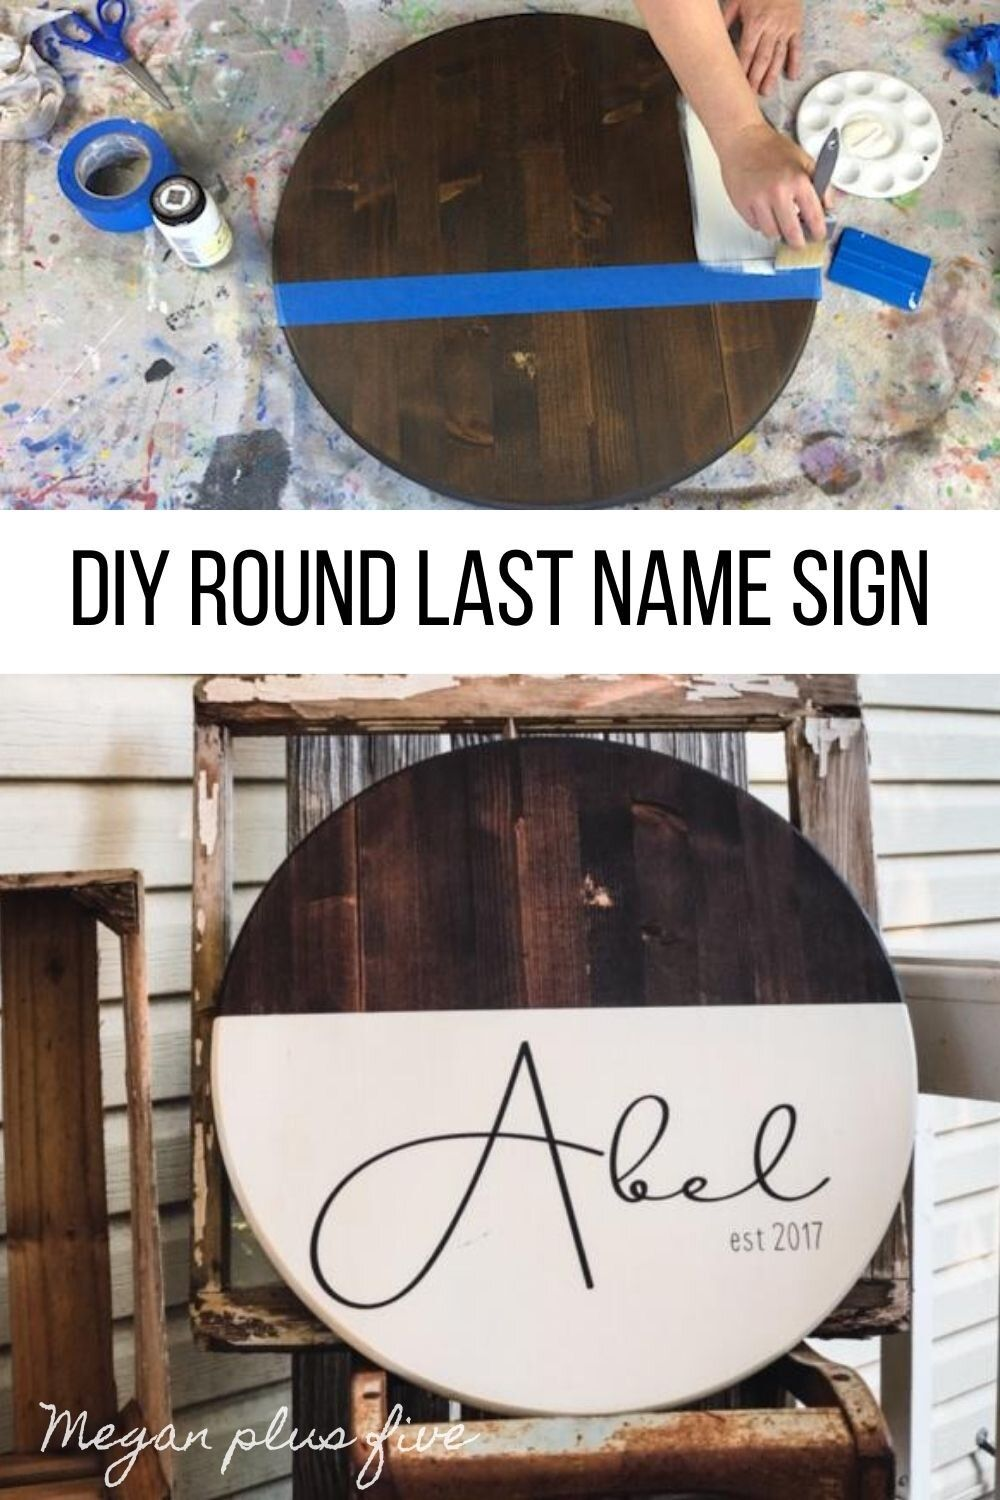 DIY round last name established sign with a modern